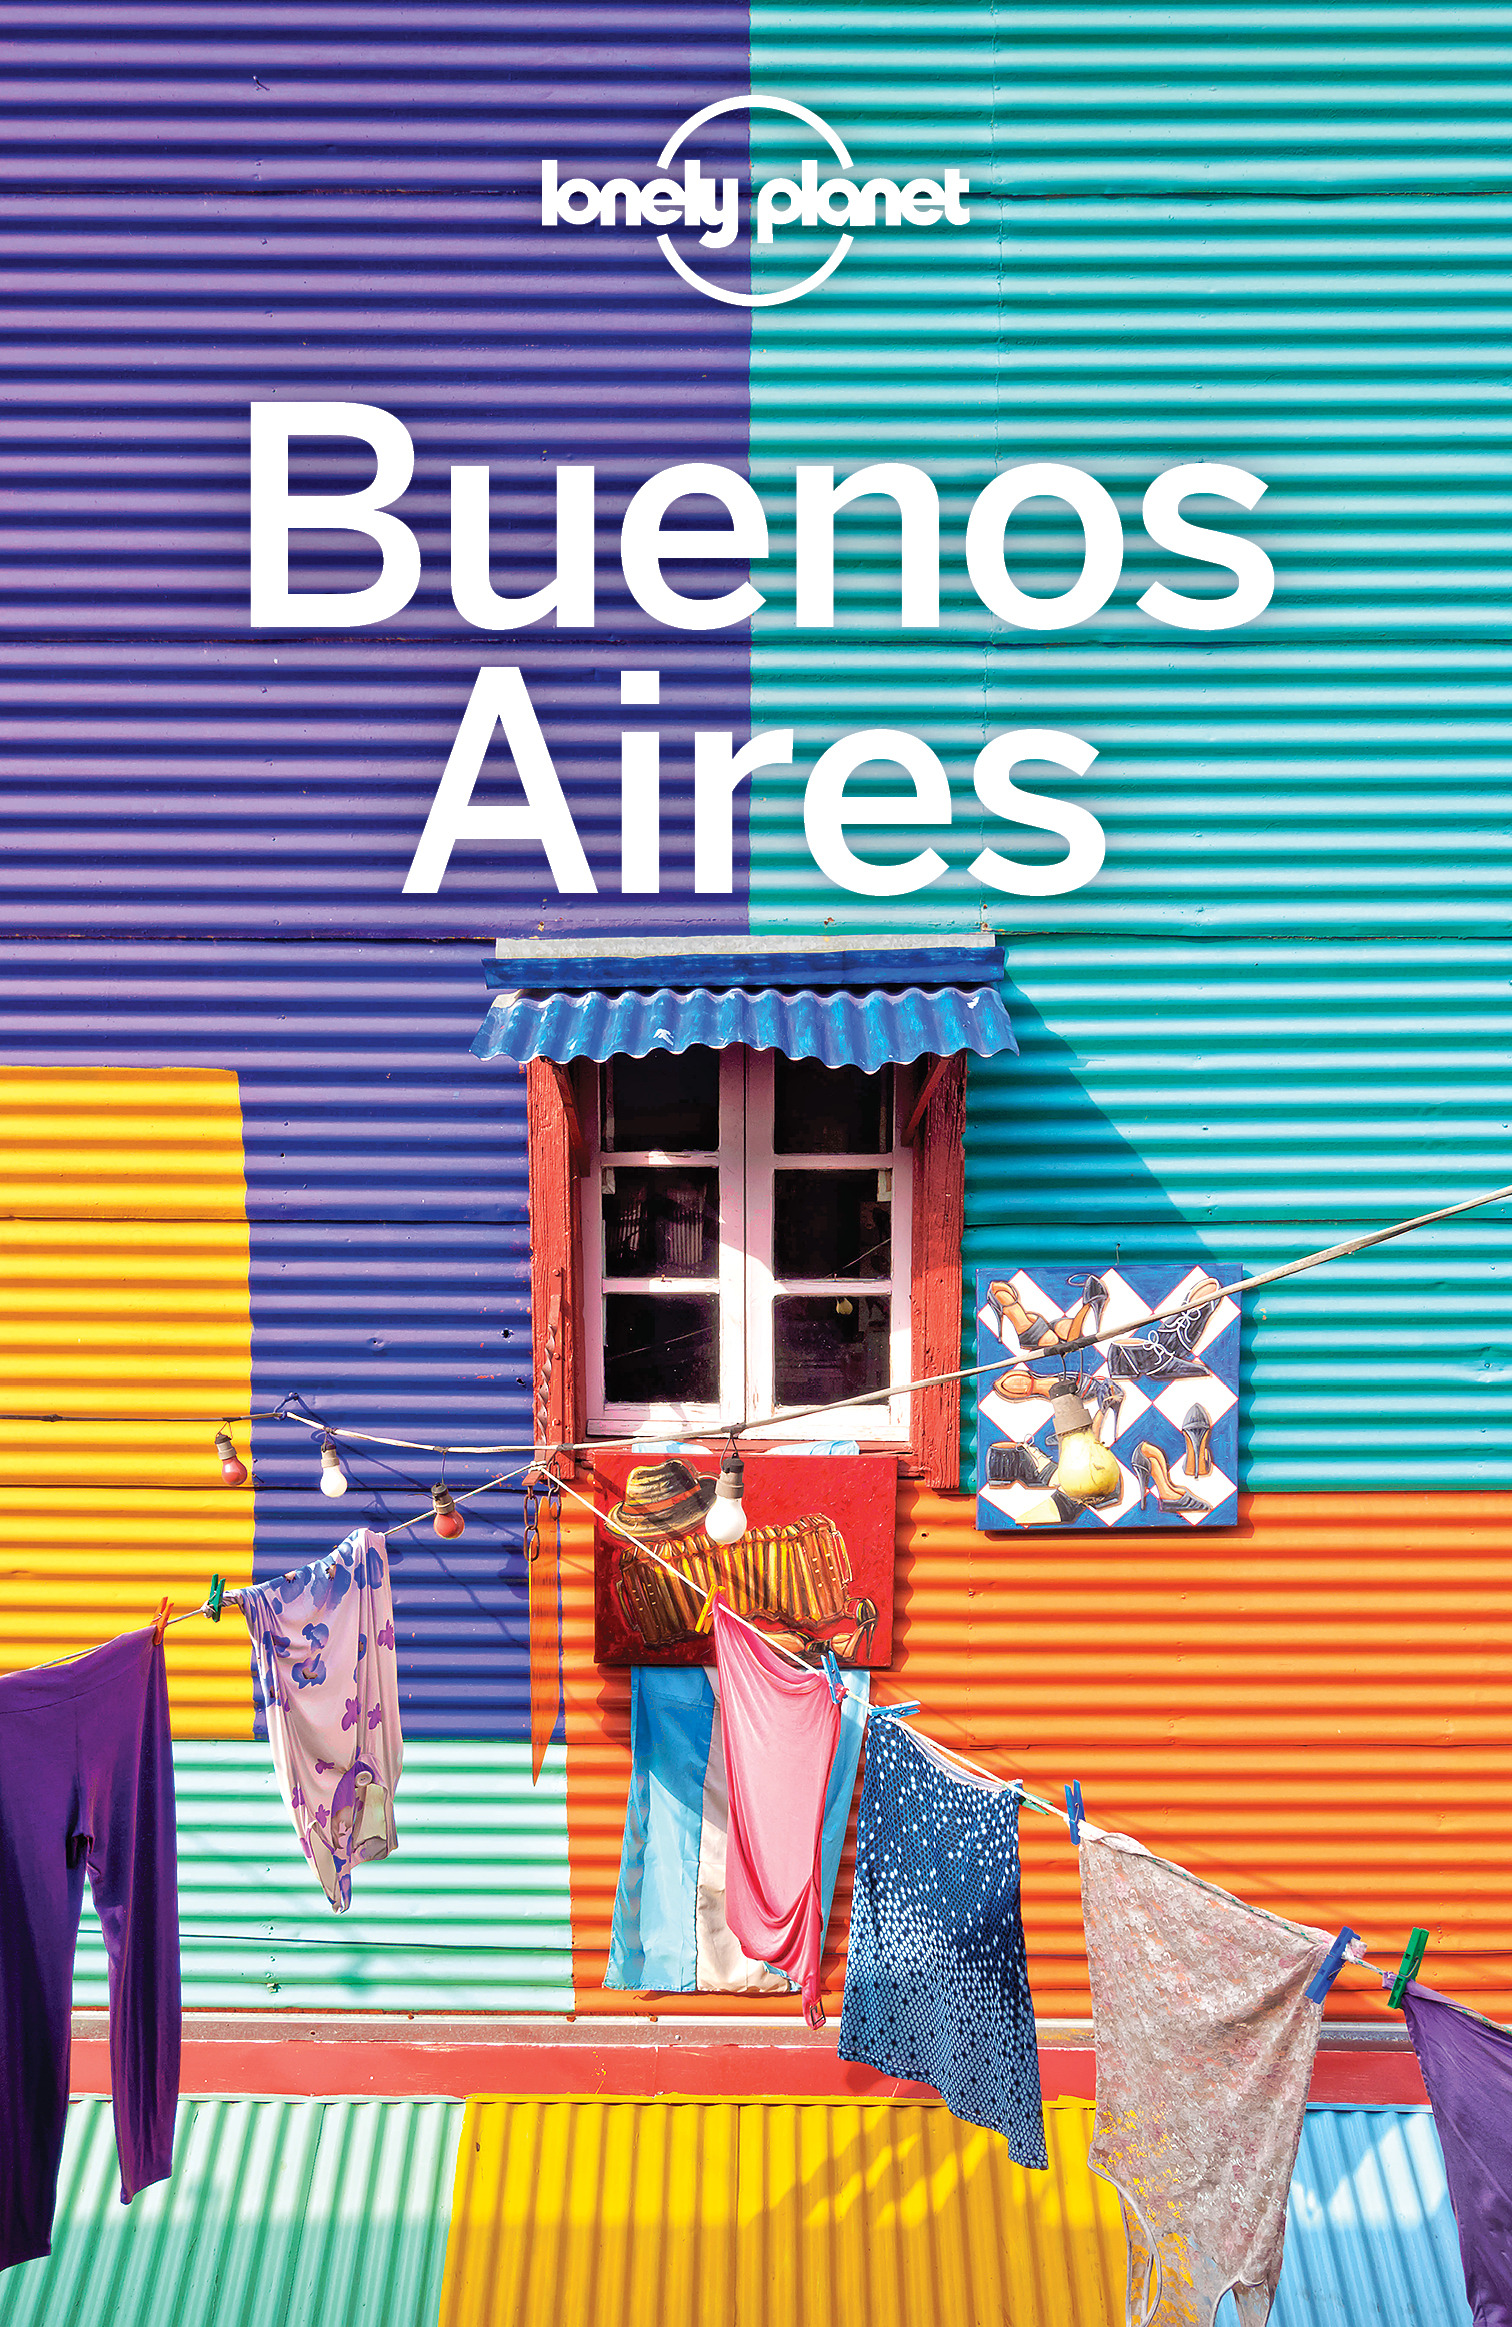 Planet, Lonely - Lonely Planet Buenos Aires, ebook